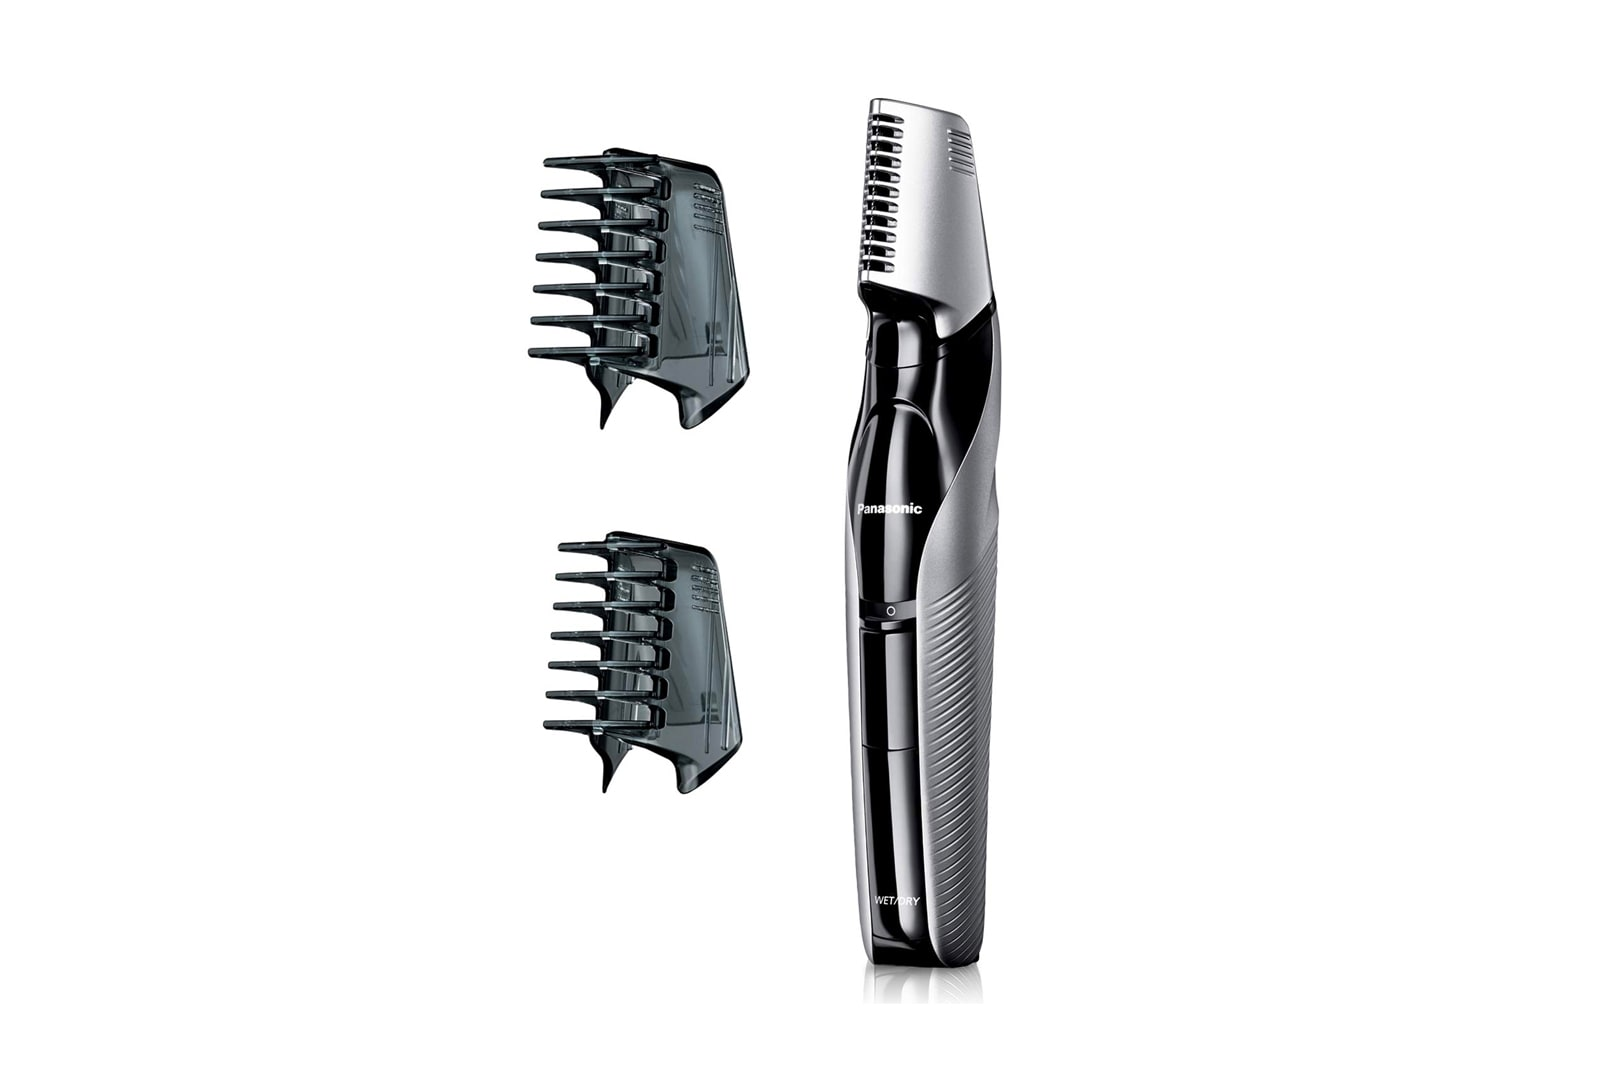 Panasonic Electric Body Hair Trimmer and Groomer for Men ER-GK60-S